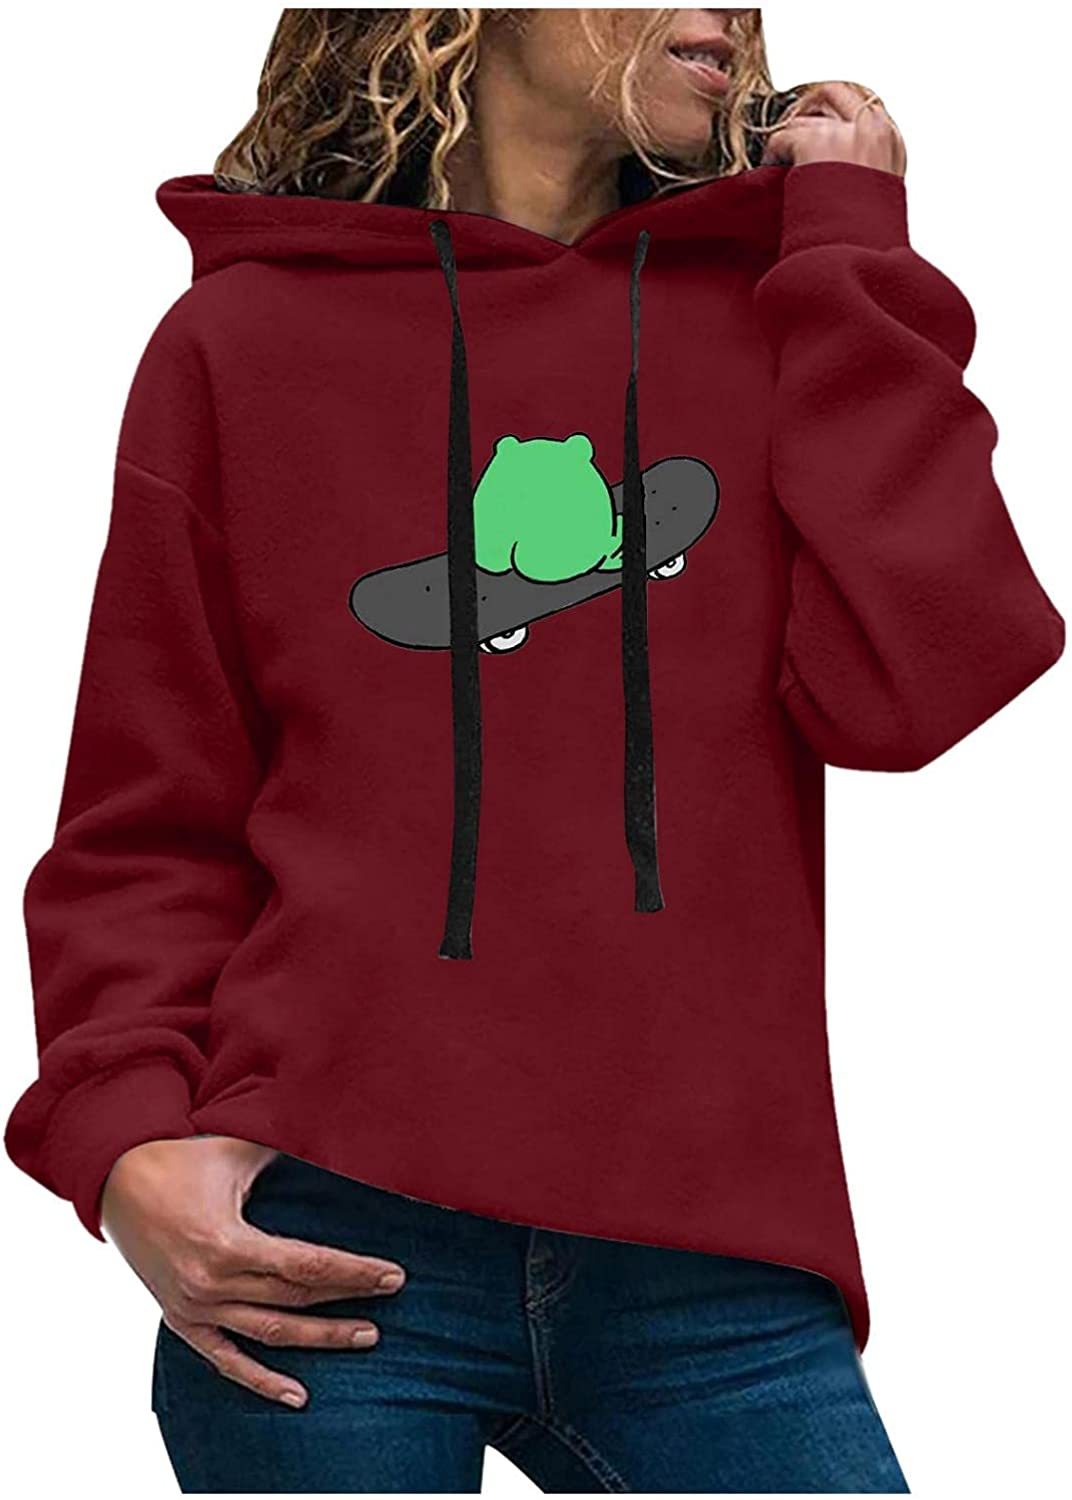 Oiumov Hoodies for Women Graphic Frog Long Sleeve Hooded Sweatshirts Crewneck Pullover Tops Sweater Shirts with Pockets